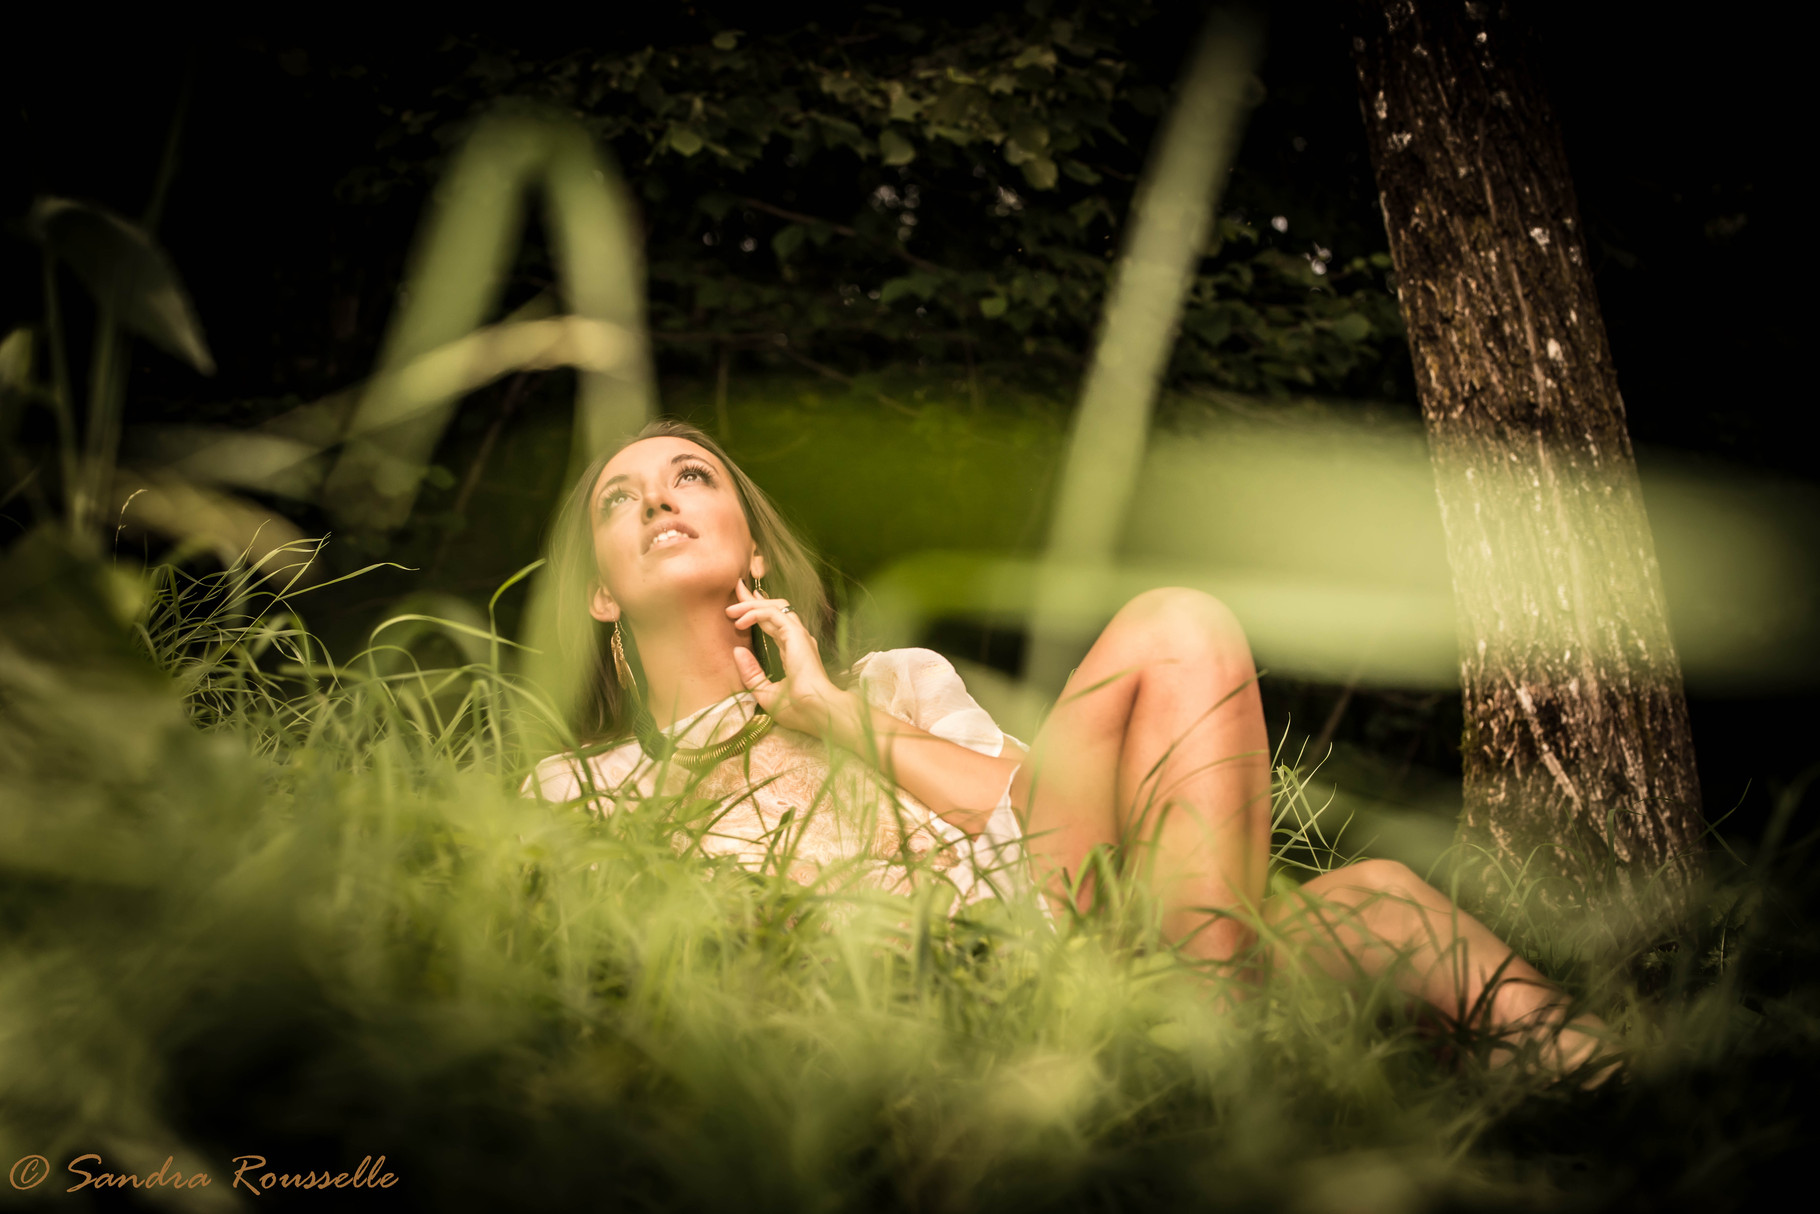 S ances photos en ext rieur s rousselle photographe for Shooting photo exterieur foret